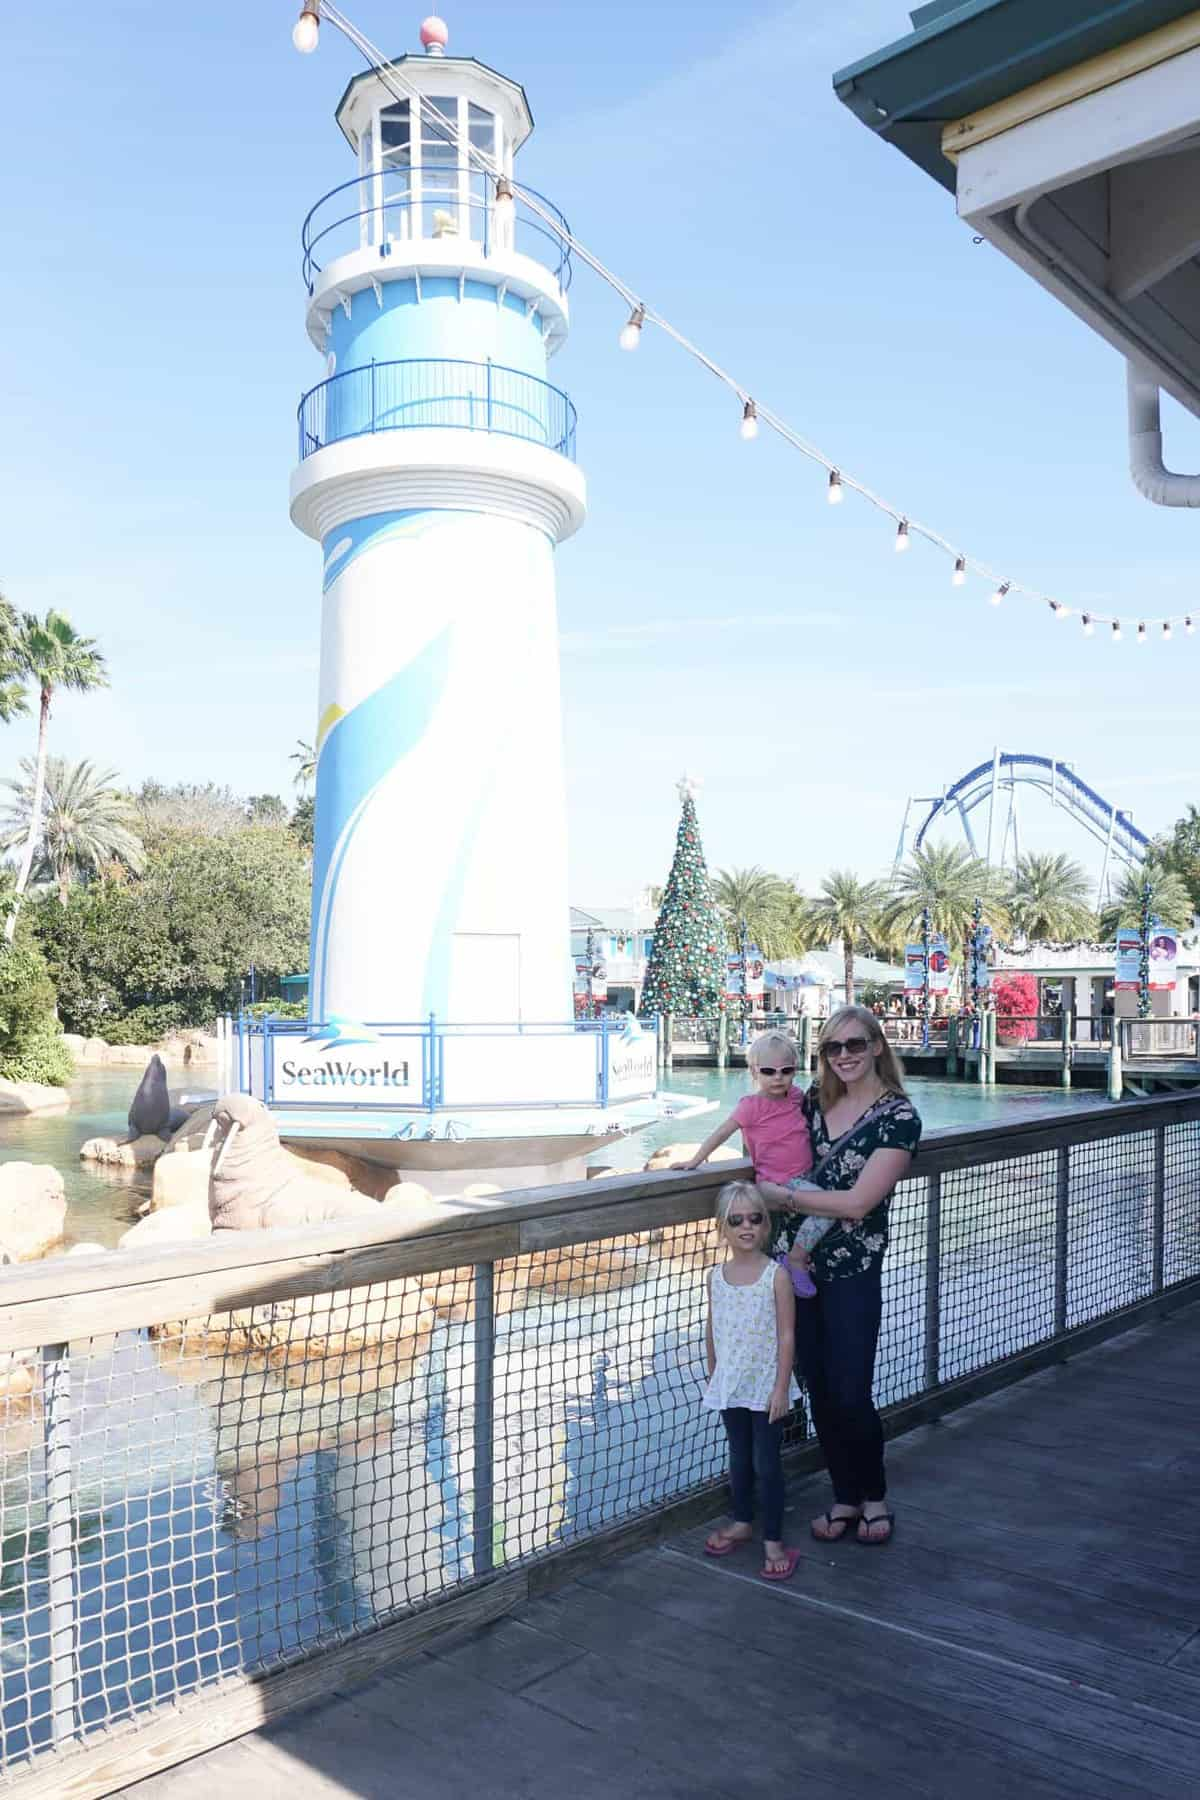 Where to stay and what to do pre-cruise in Orlando with the kids! Tips on finding the best accomodations and activities for families in Florida for a stay before or after a cruise from Port Canaveral.